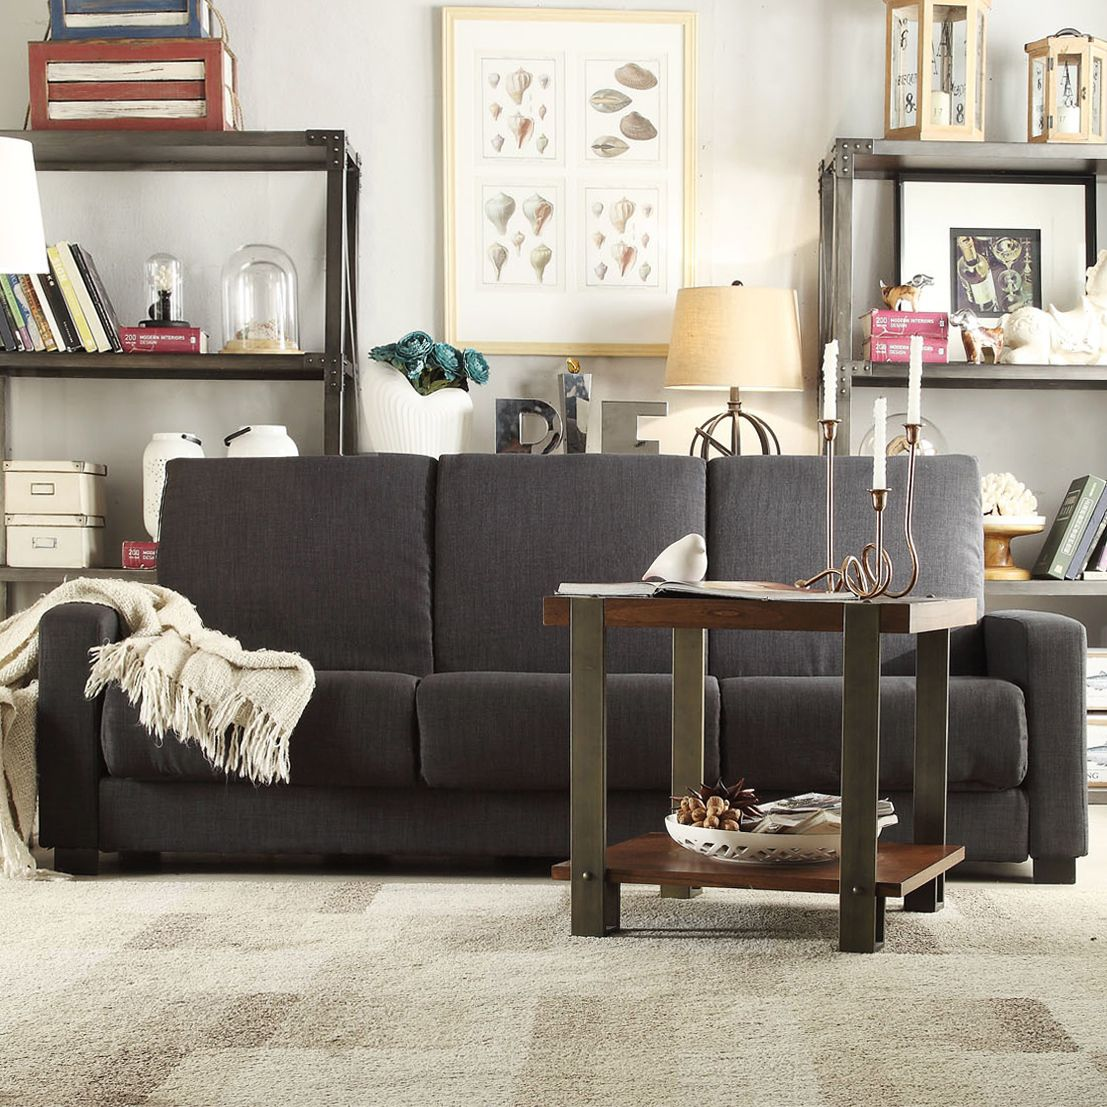 Medium image of inspire q anaheim dark gray linen futon sofa sleeper for upstairs  i like the idea of having a sleeper sofa since we don u0027t technically have a guest bedroom